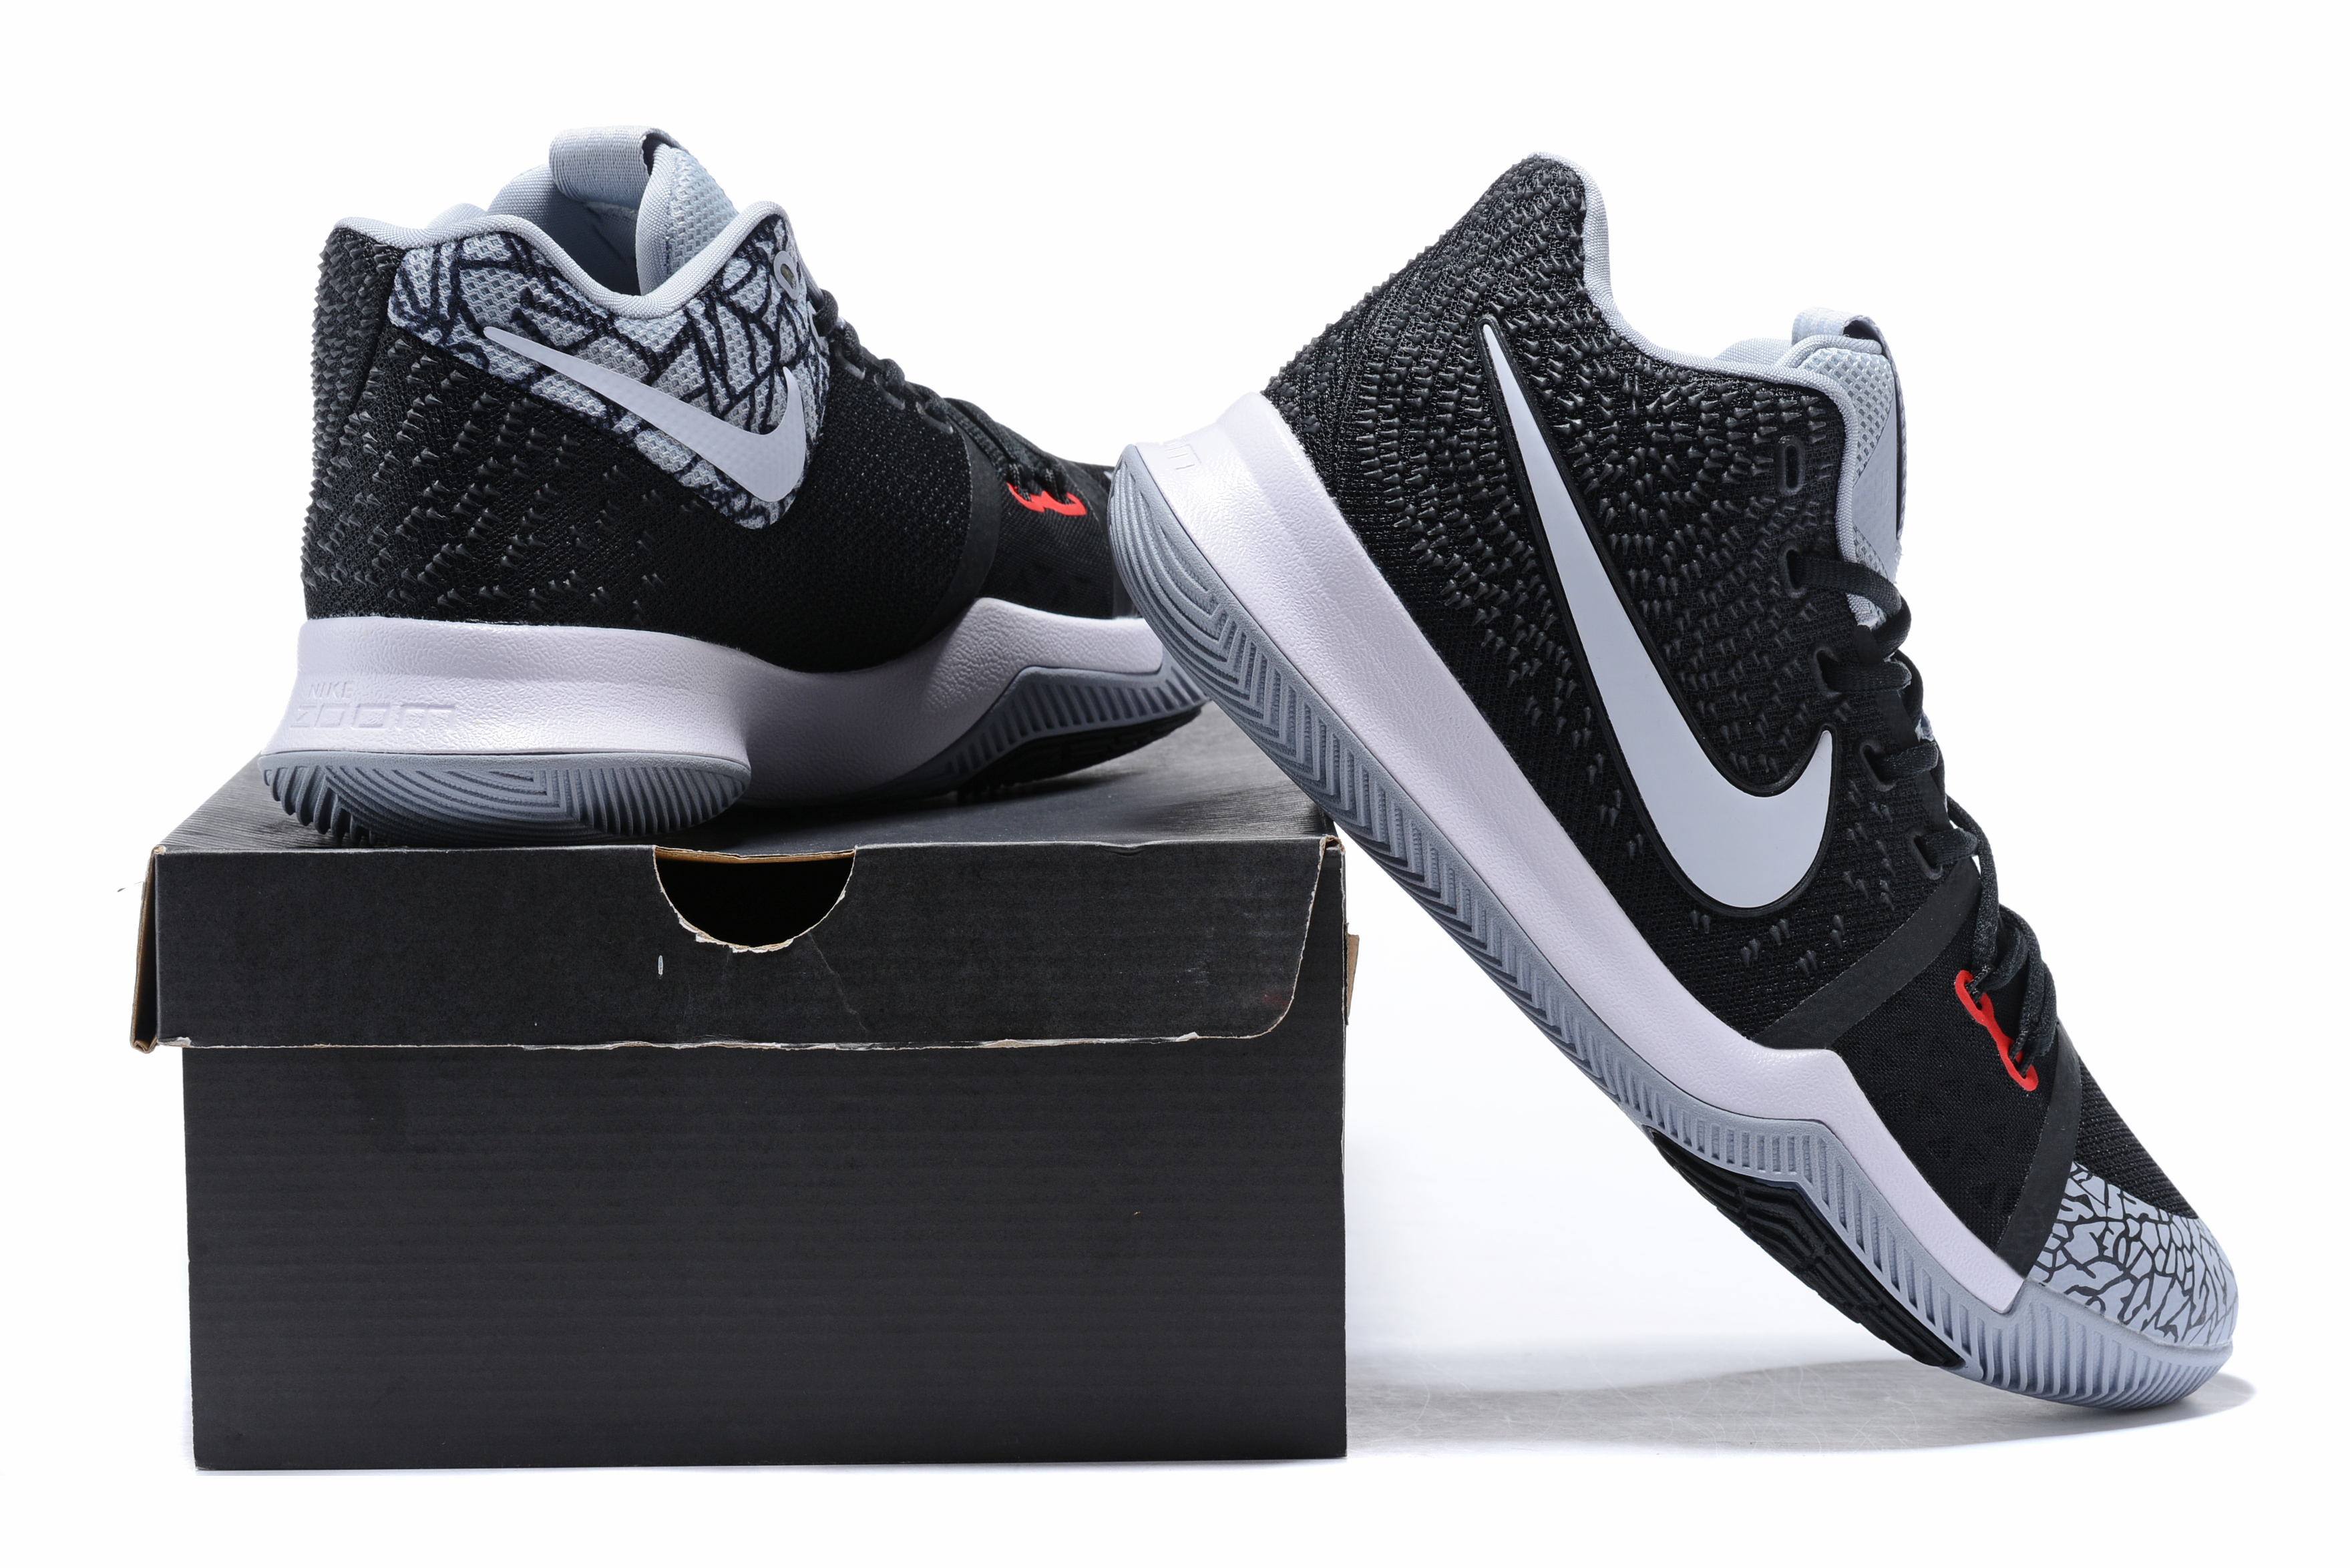 brand new 18fcc ed2ca Wholesale Cheap 2018 Nike Kyrie 3 Black Elephant Print Black Cement For  Sale - www.